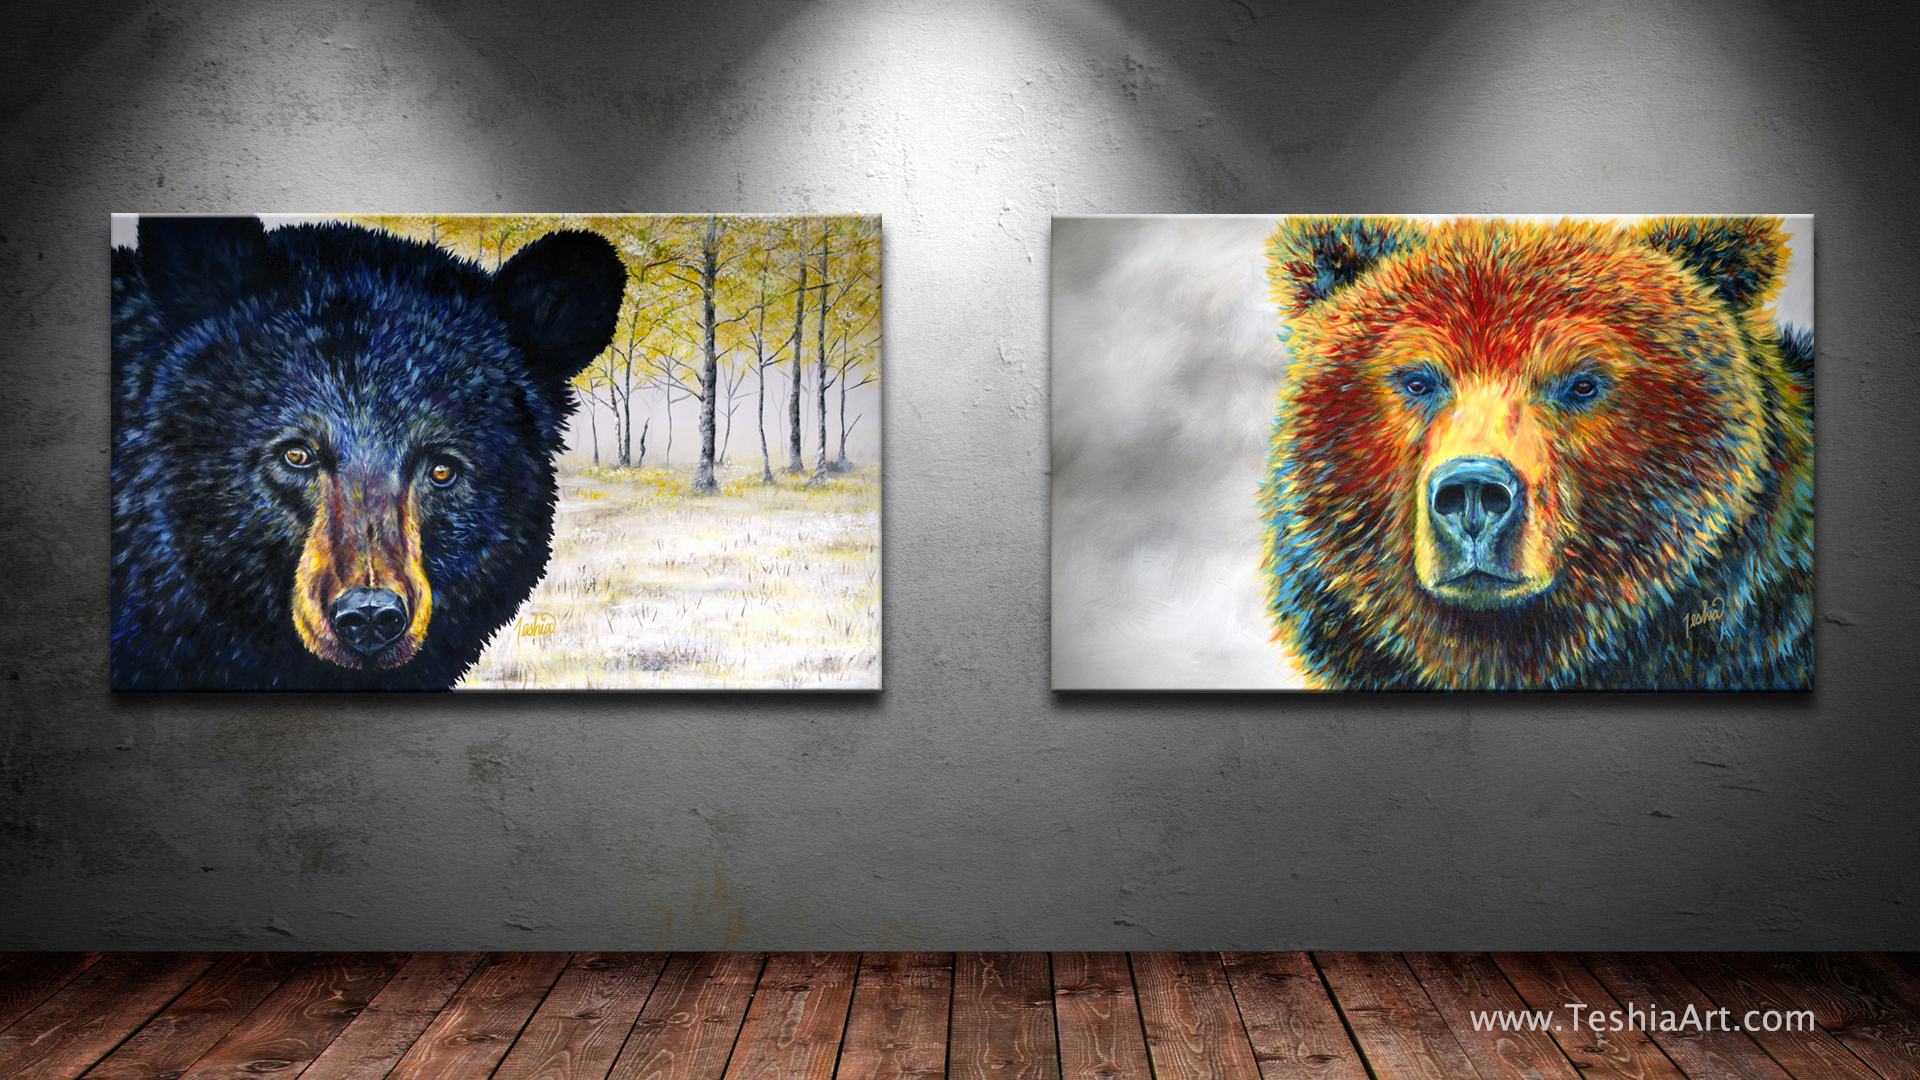 """ Autumn Eyes "" & ""Bear Thoughts"""